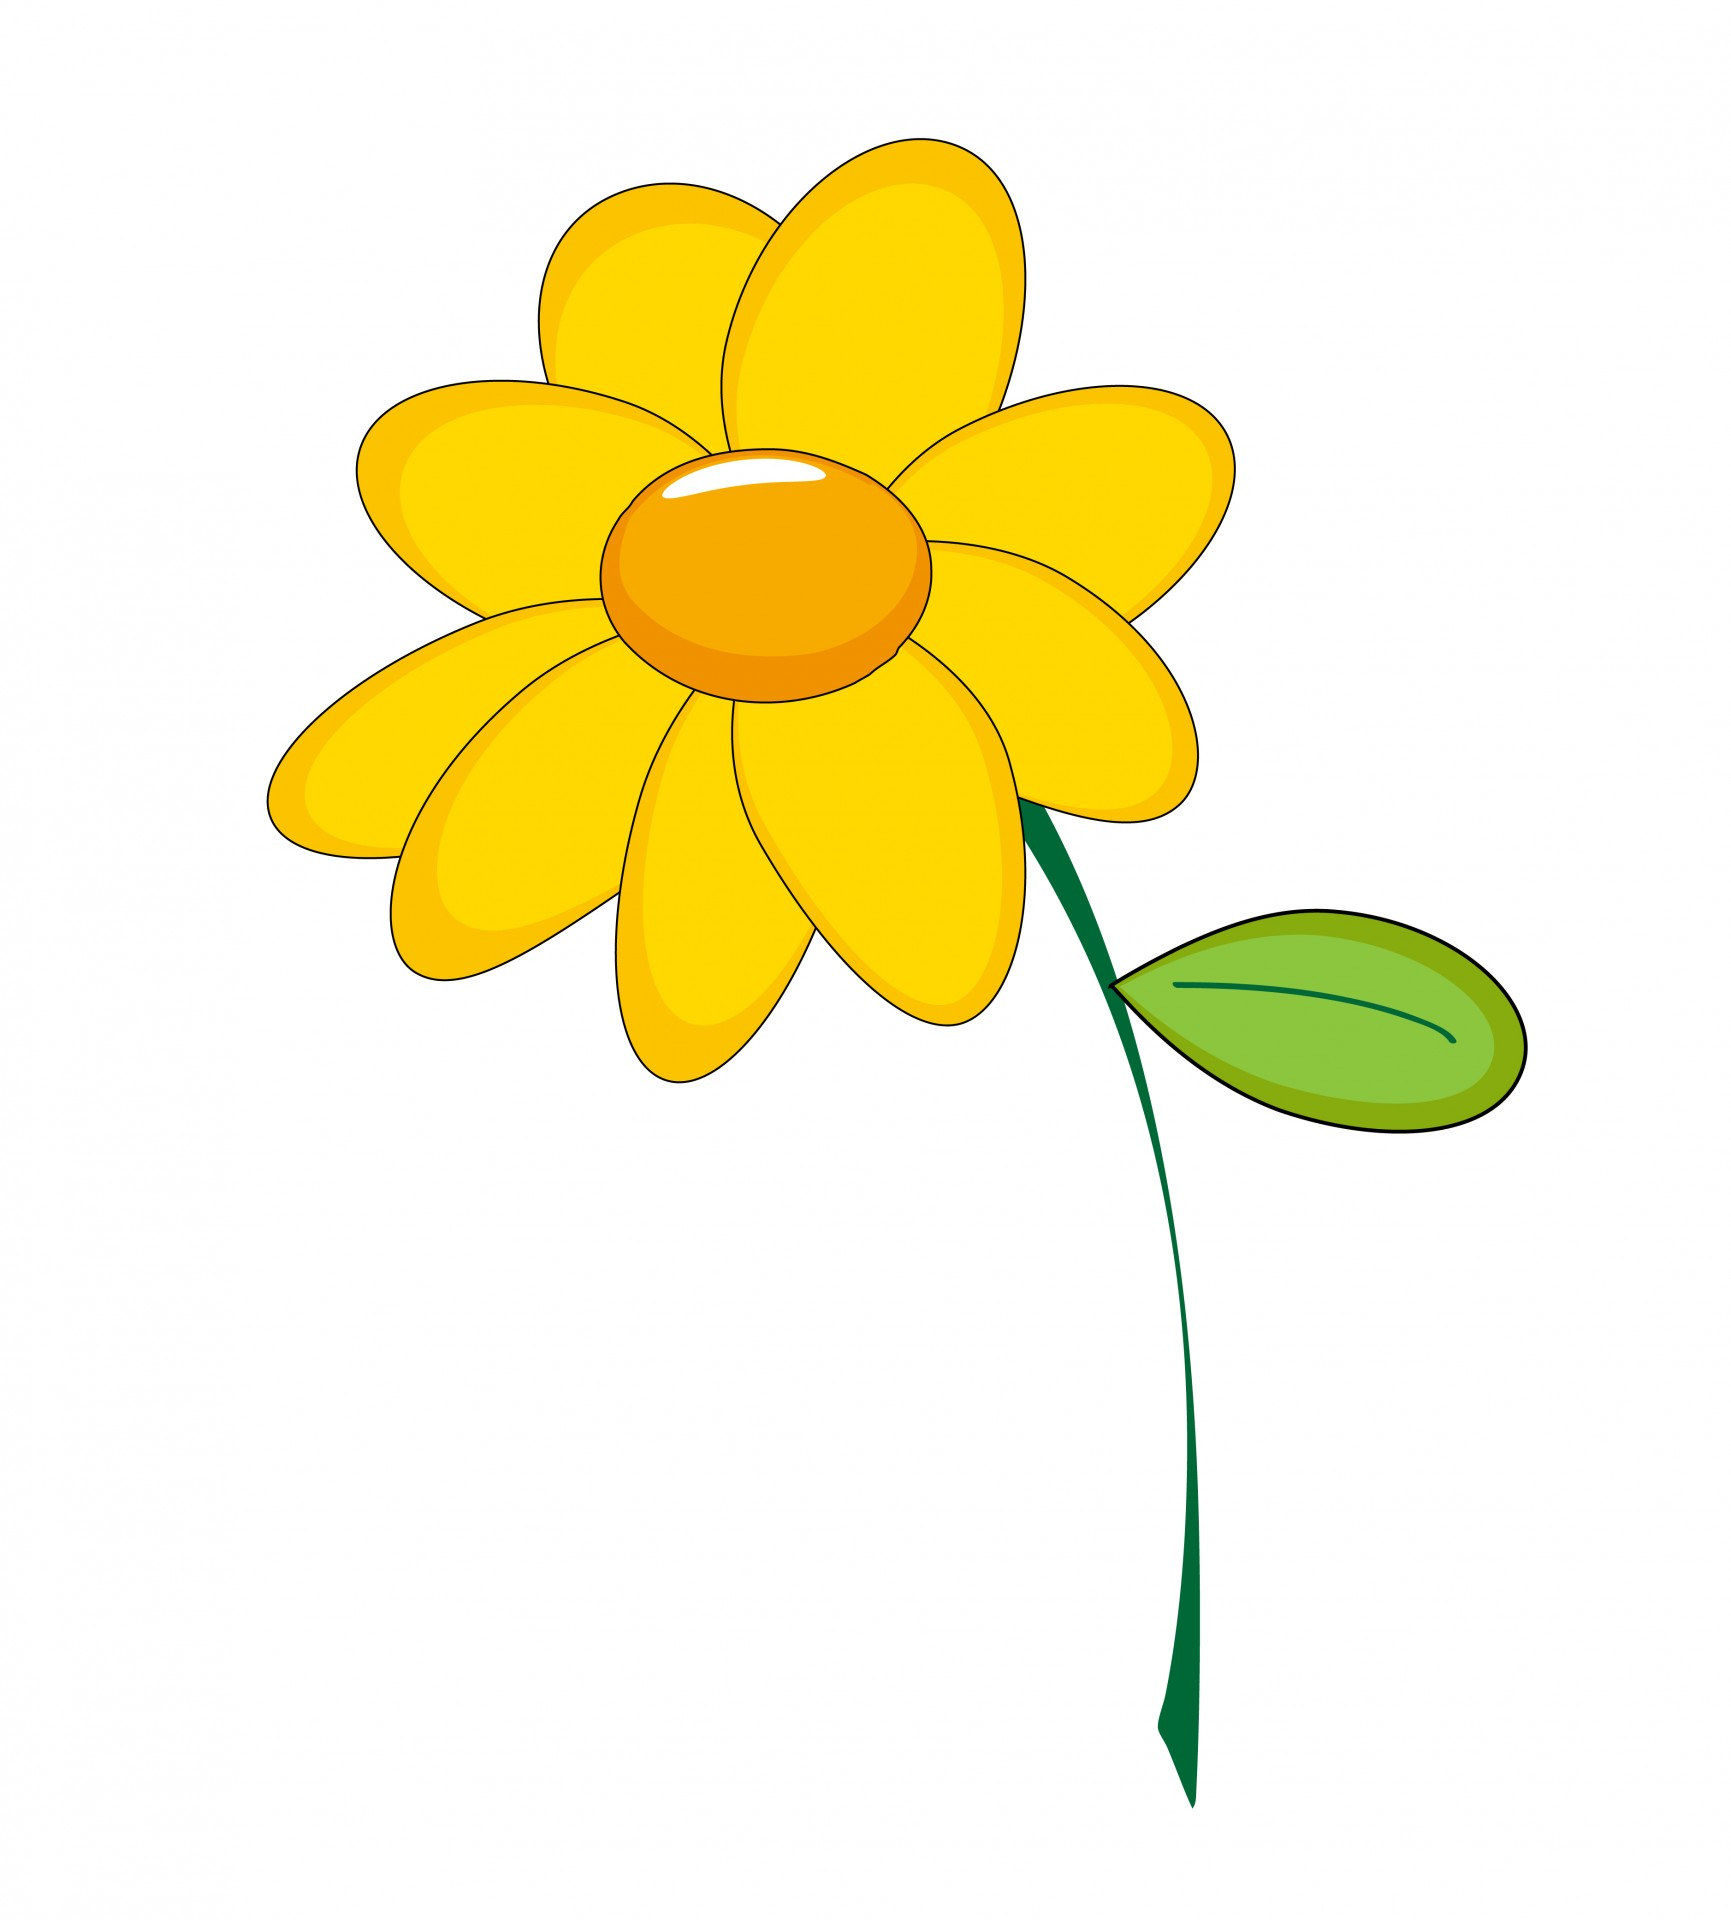 Clip art yellow flowers png freeuse stock Yellow Flower Clipart Free Stock Photo - Public Domain Pictures png freeuse stock